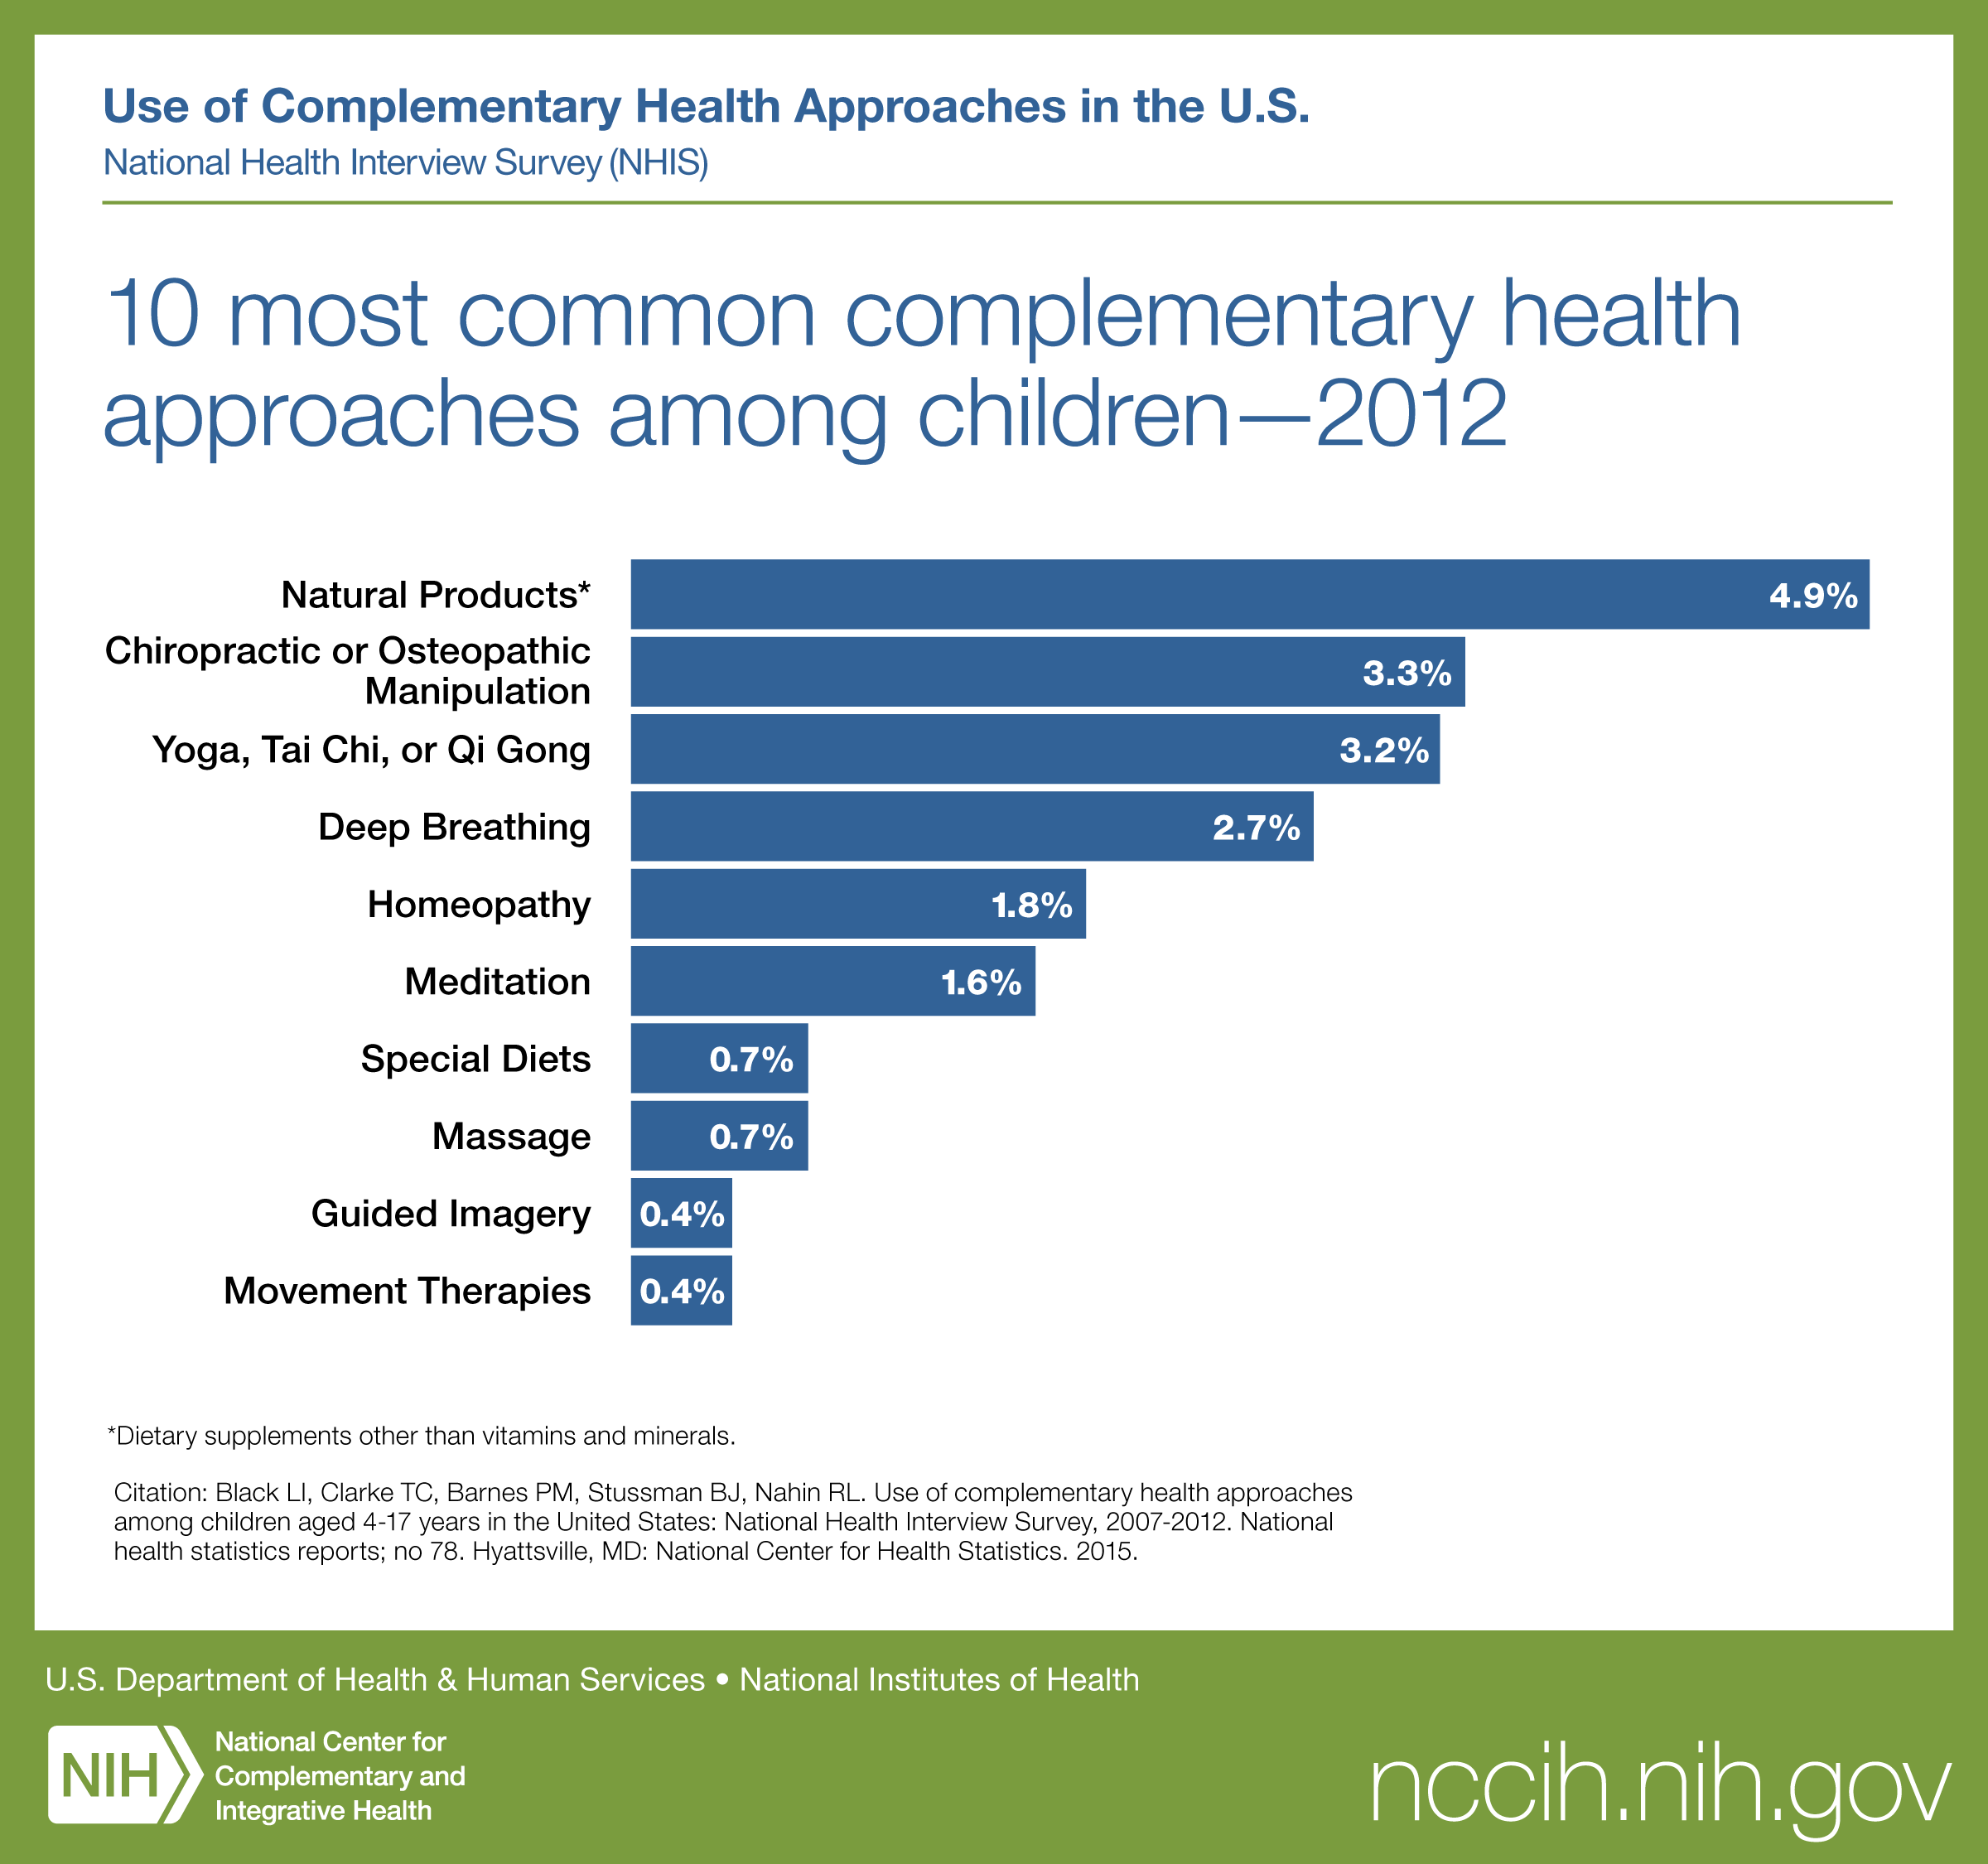 10 Most Common Complementary Health Approaches Among Children-2012:  see description below